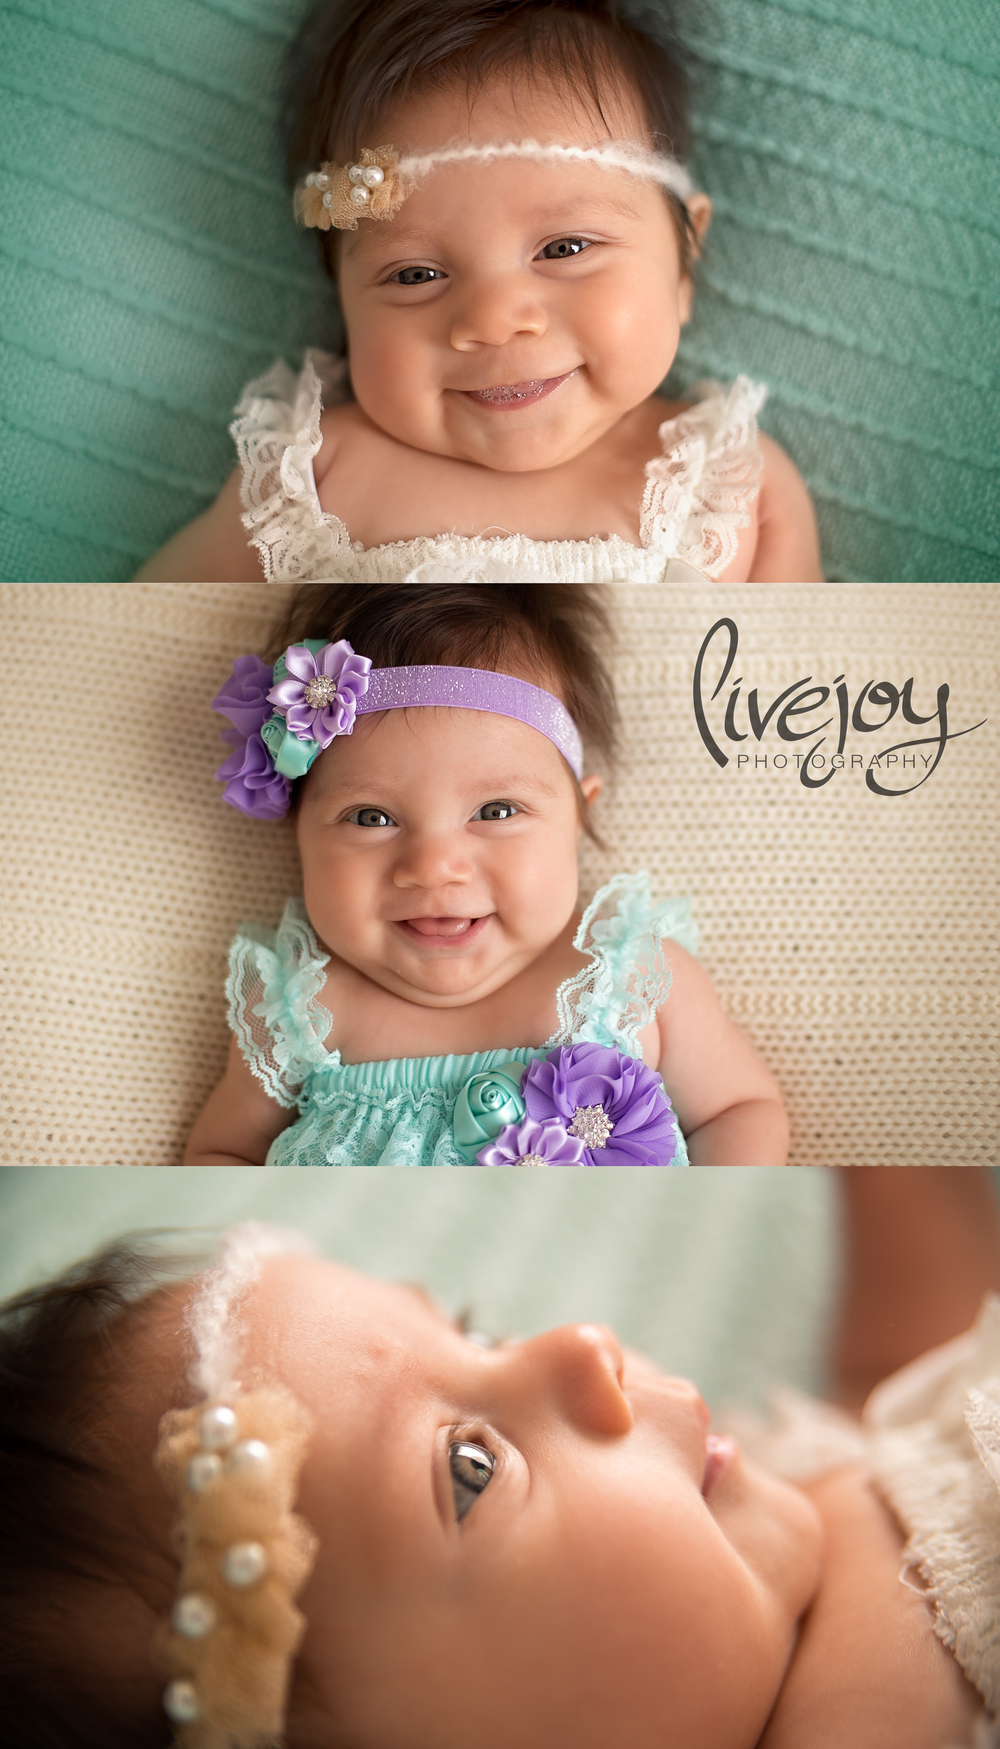 3 Month Baby Photos | LiveJoy Photography | Oregon